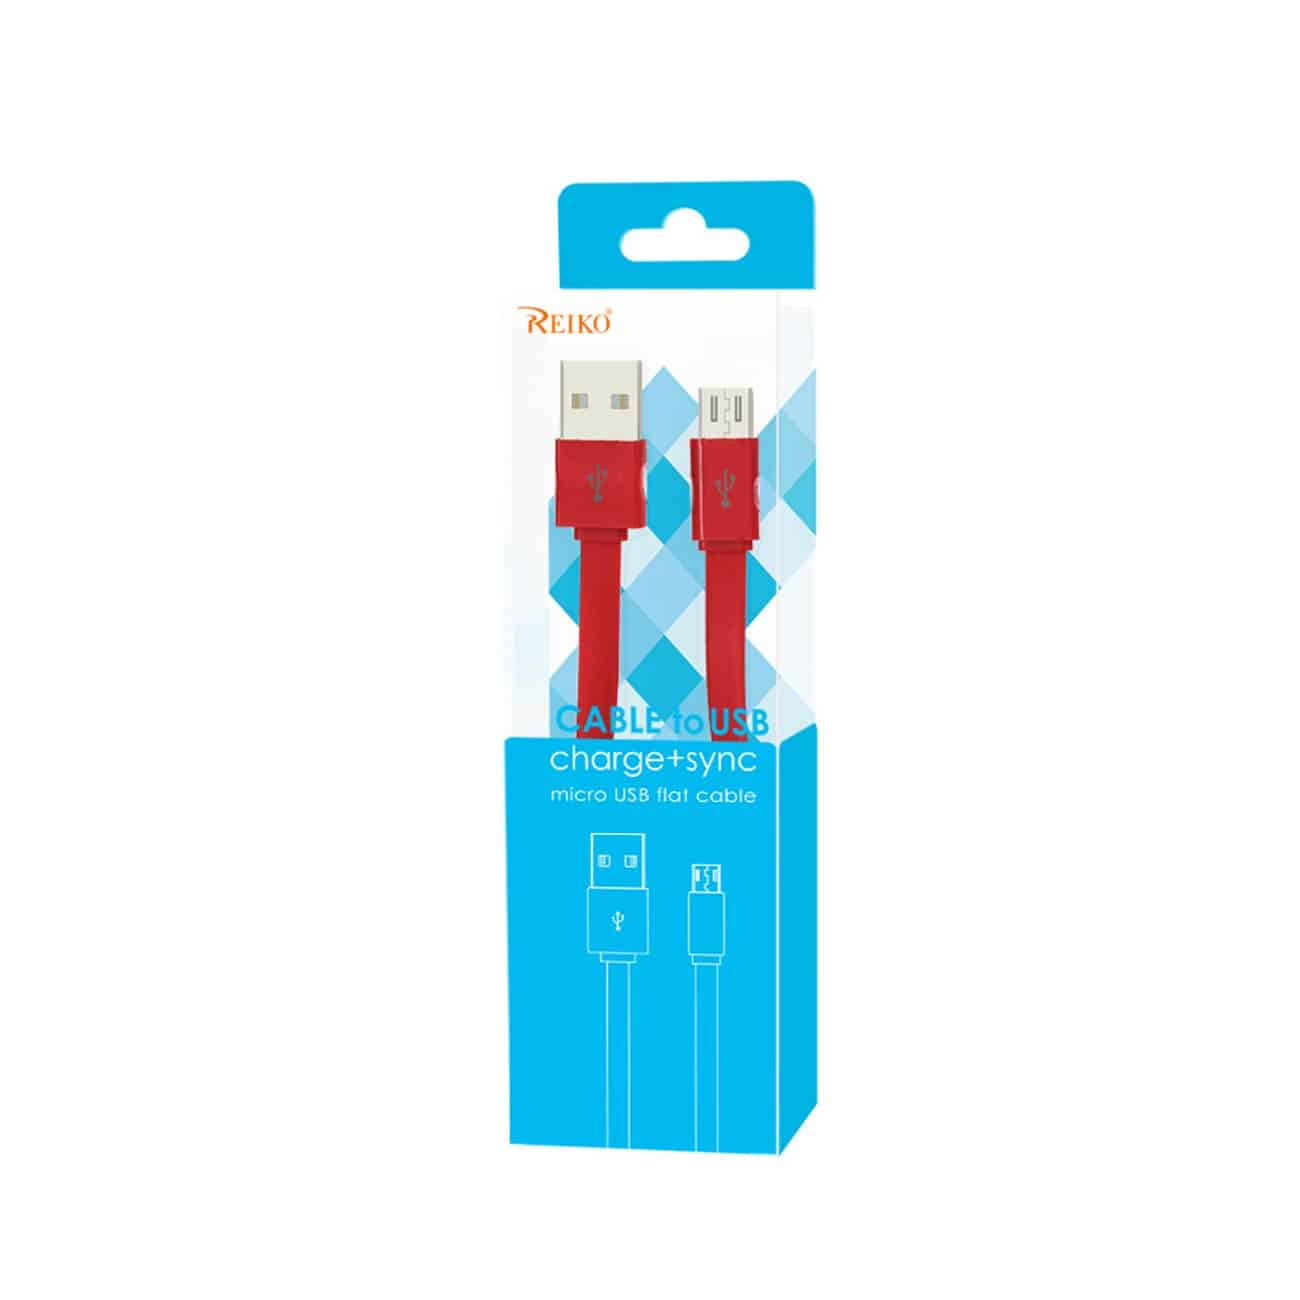 FLAT MICRO USB DATA CABLE 3.2FT IN RED